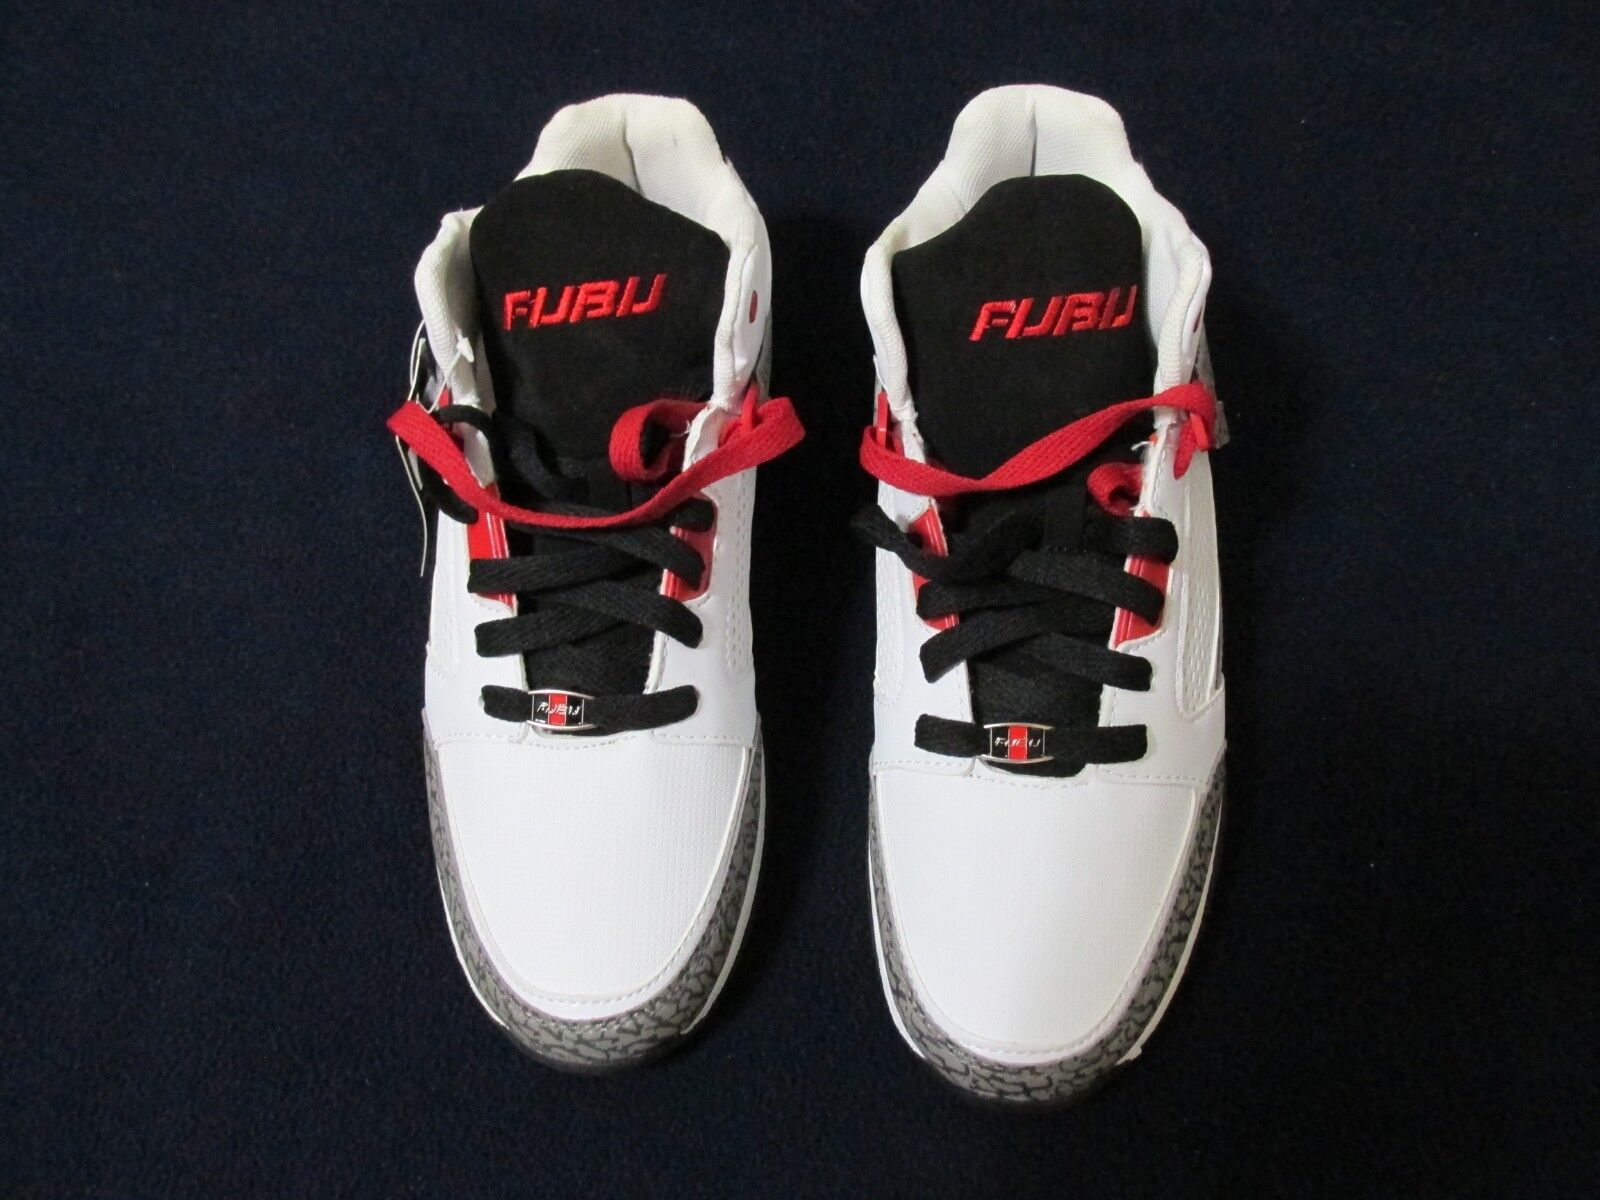 4fa83cf425 New With Tags (Without Box), Men's Basketball shoes (Men's US Size 9 ...